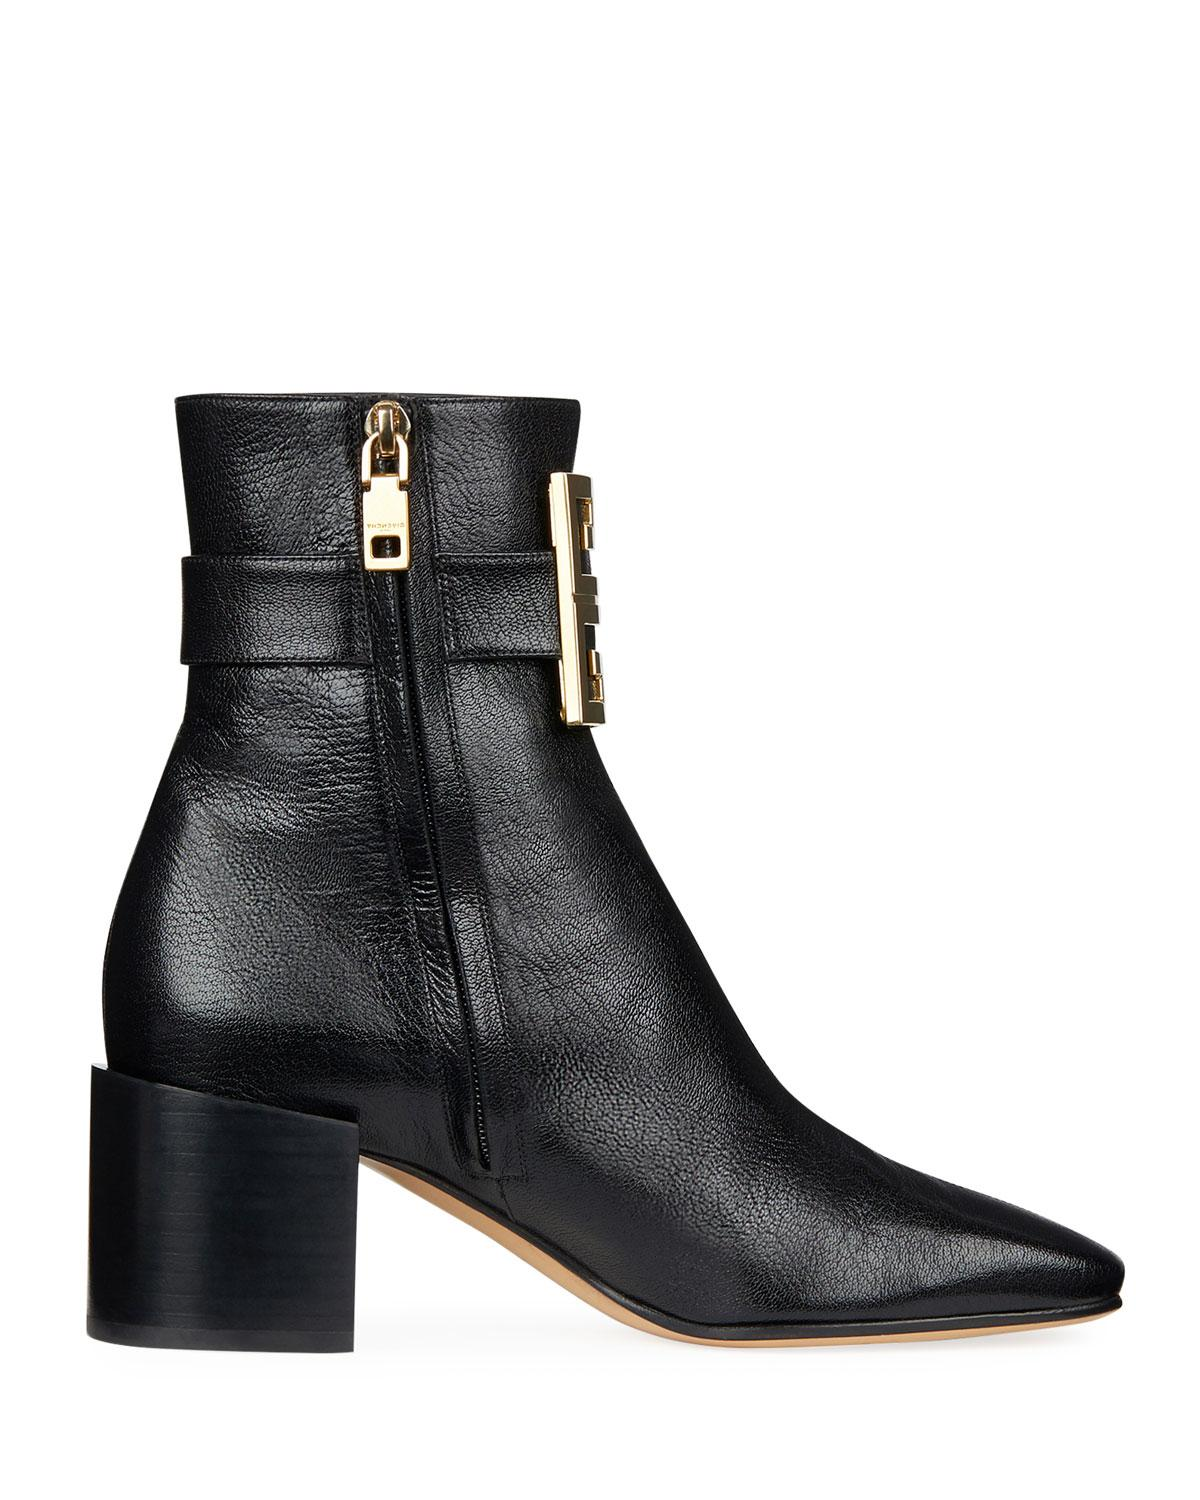 d50b096cc0e9 Lyst - Givenchy 4g Logo Leather Block-heel Ankle Boots in Black